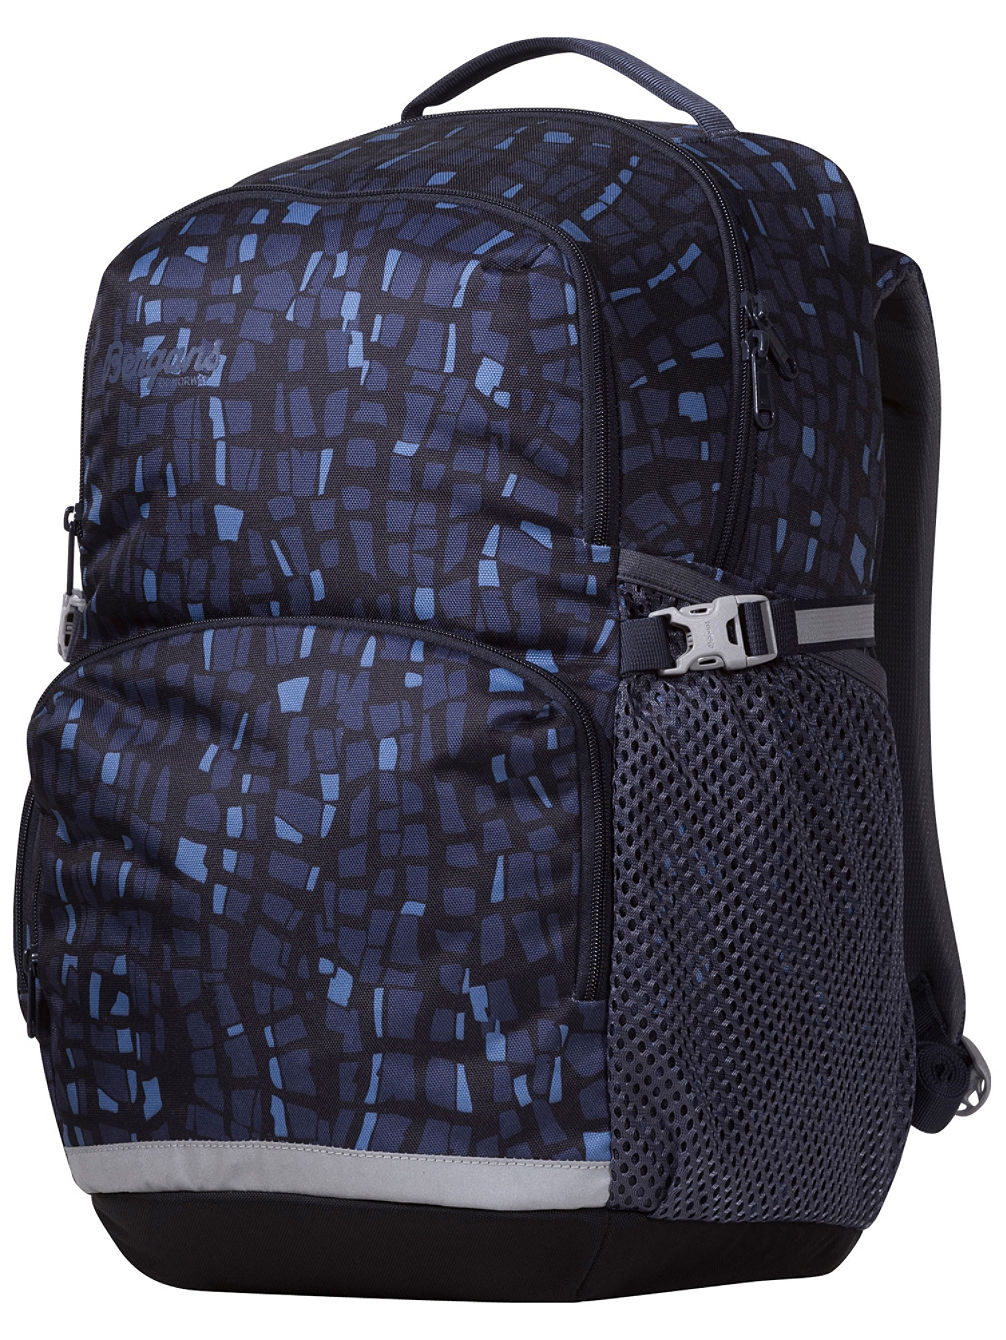 2Go 32L Backpack Youth